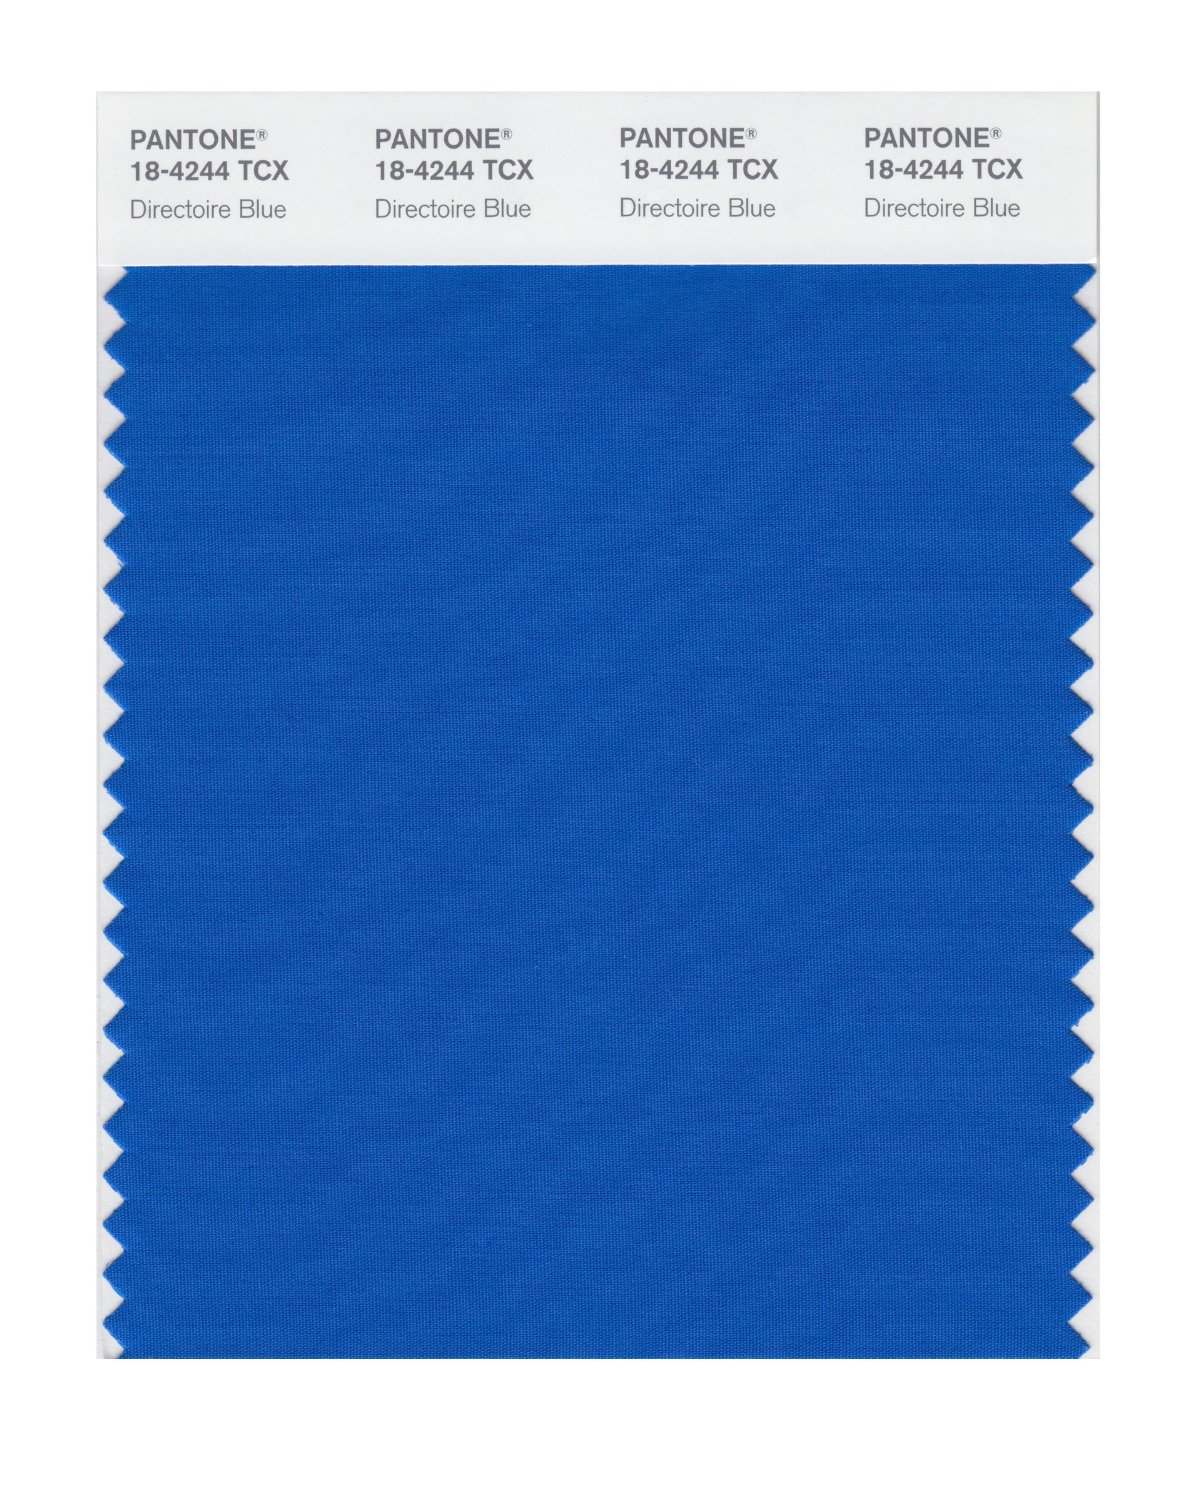 Pantone Smart Swatch 18-4244 Directoire Blue